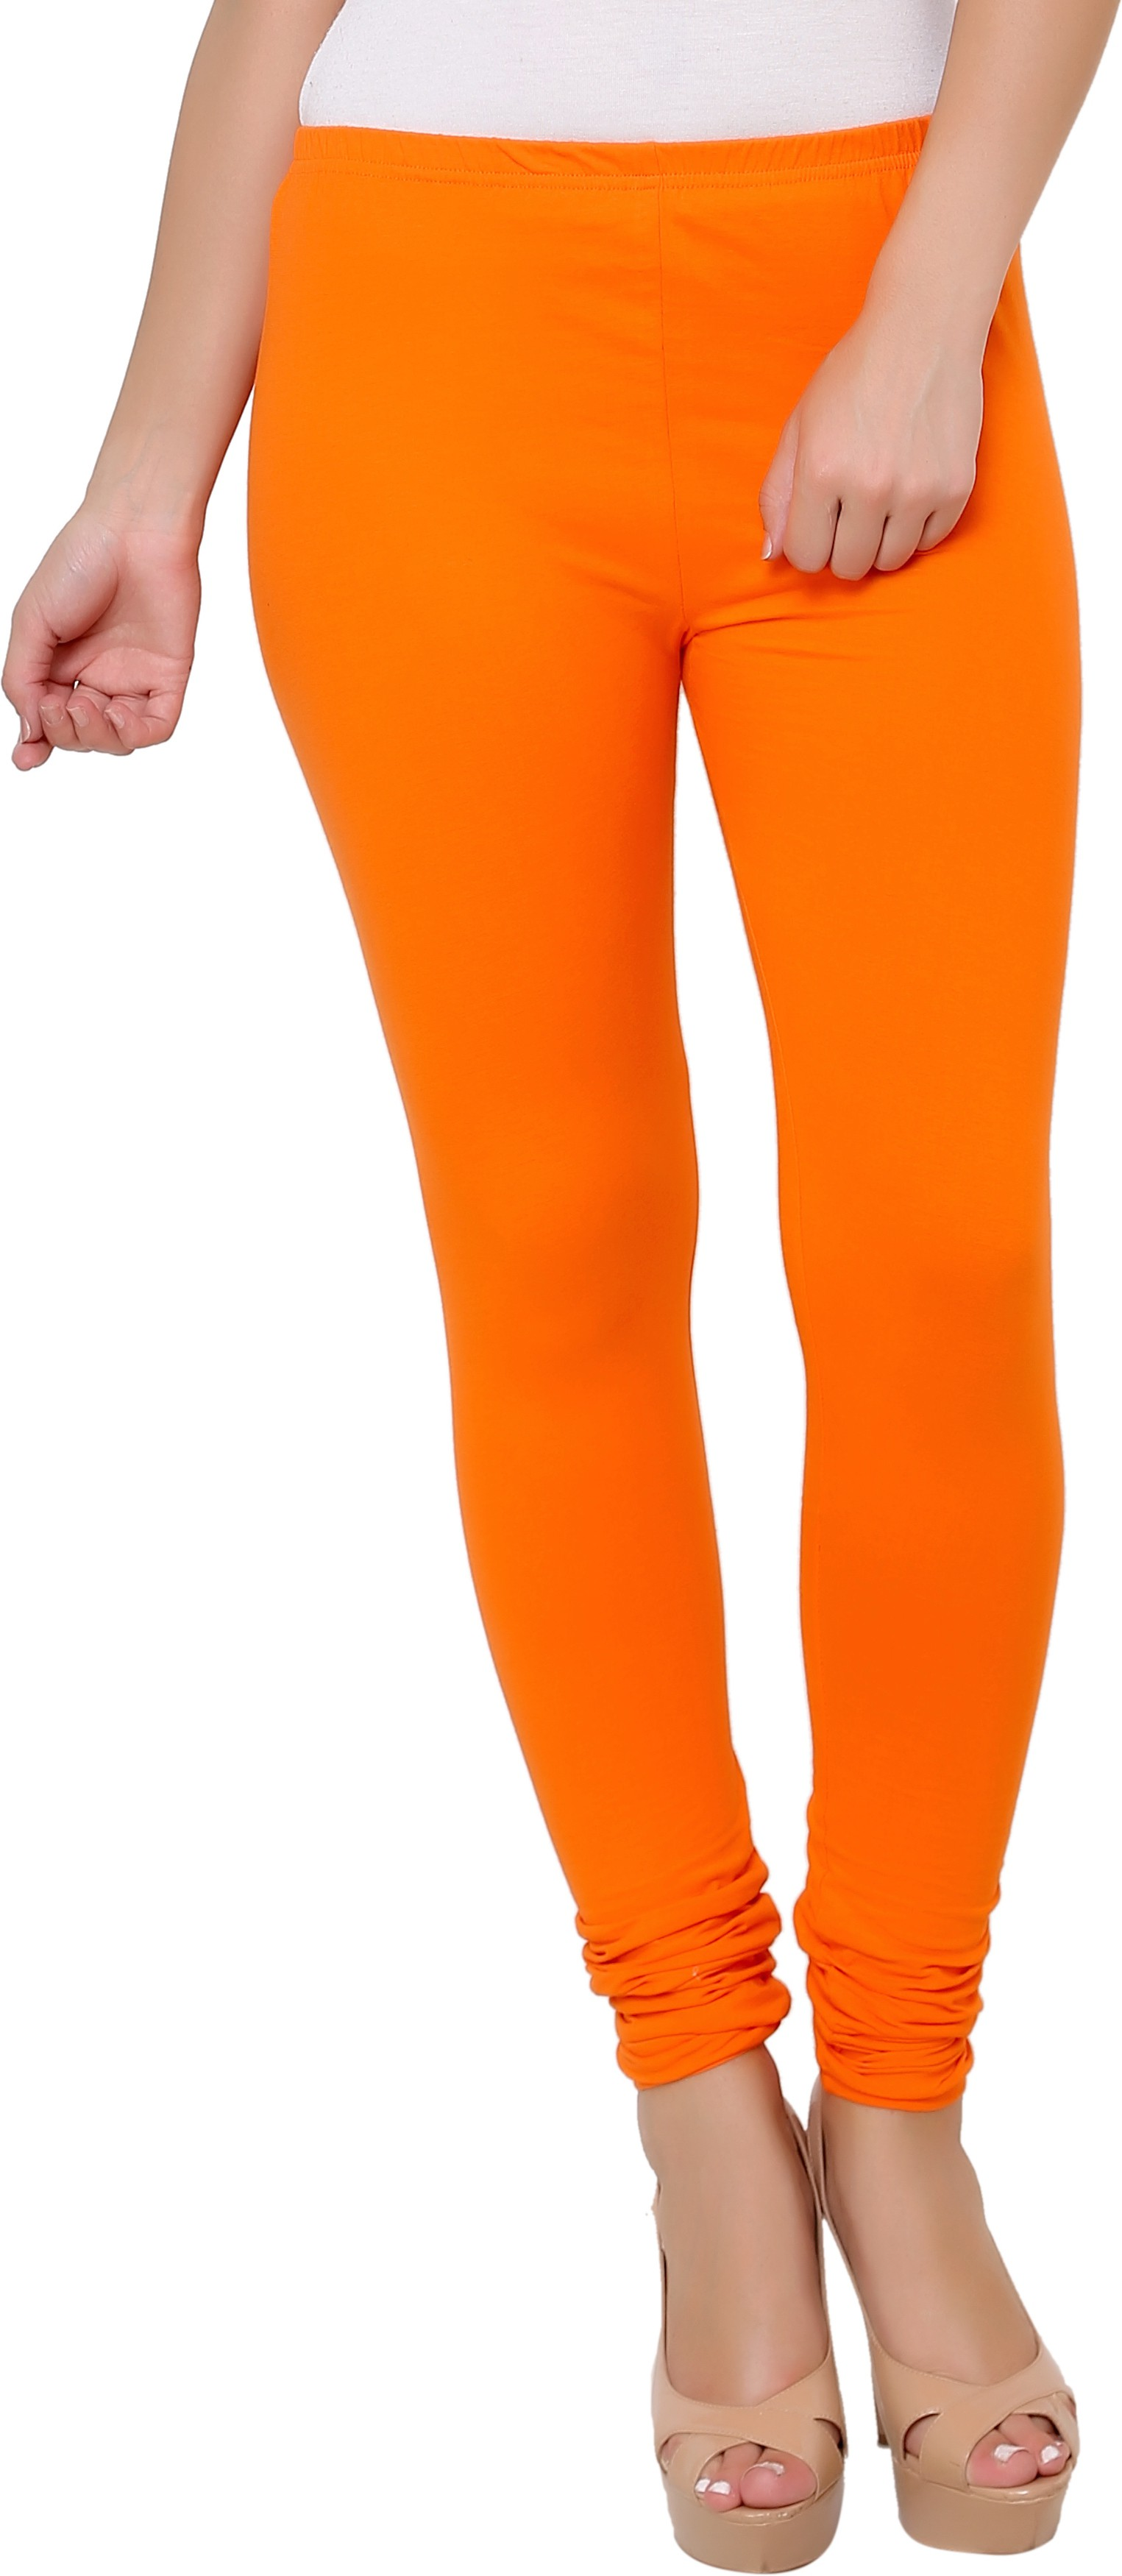 Leebonee Womens Orange Leggings